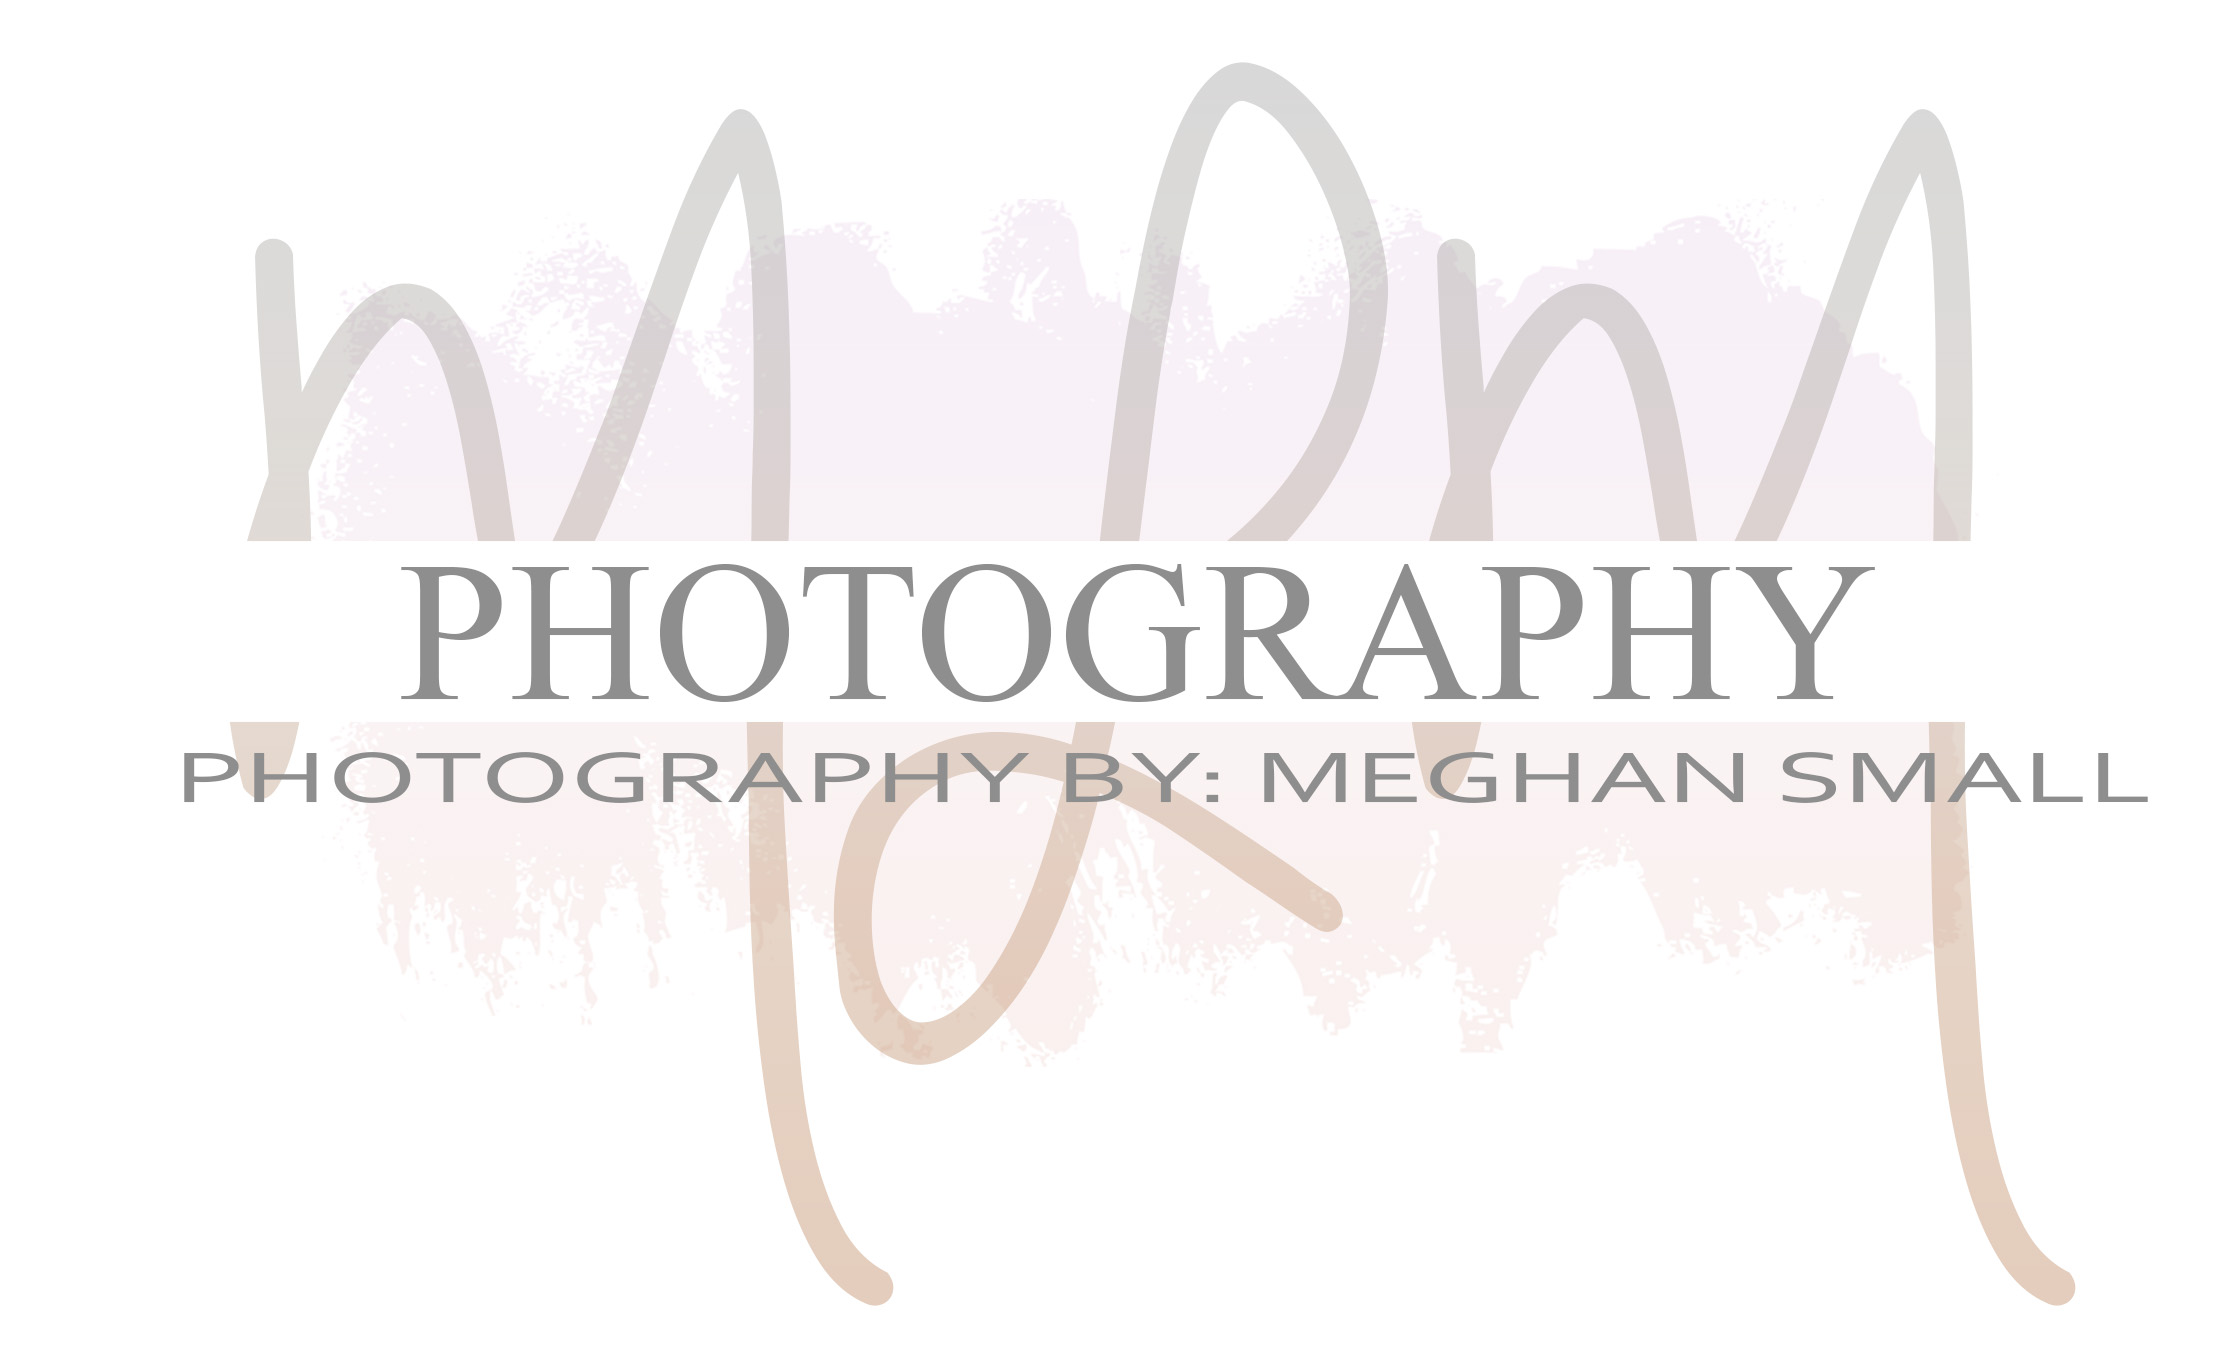 MLM PHOTOGRAPHY